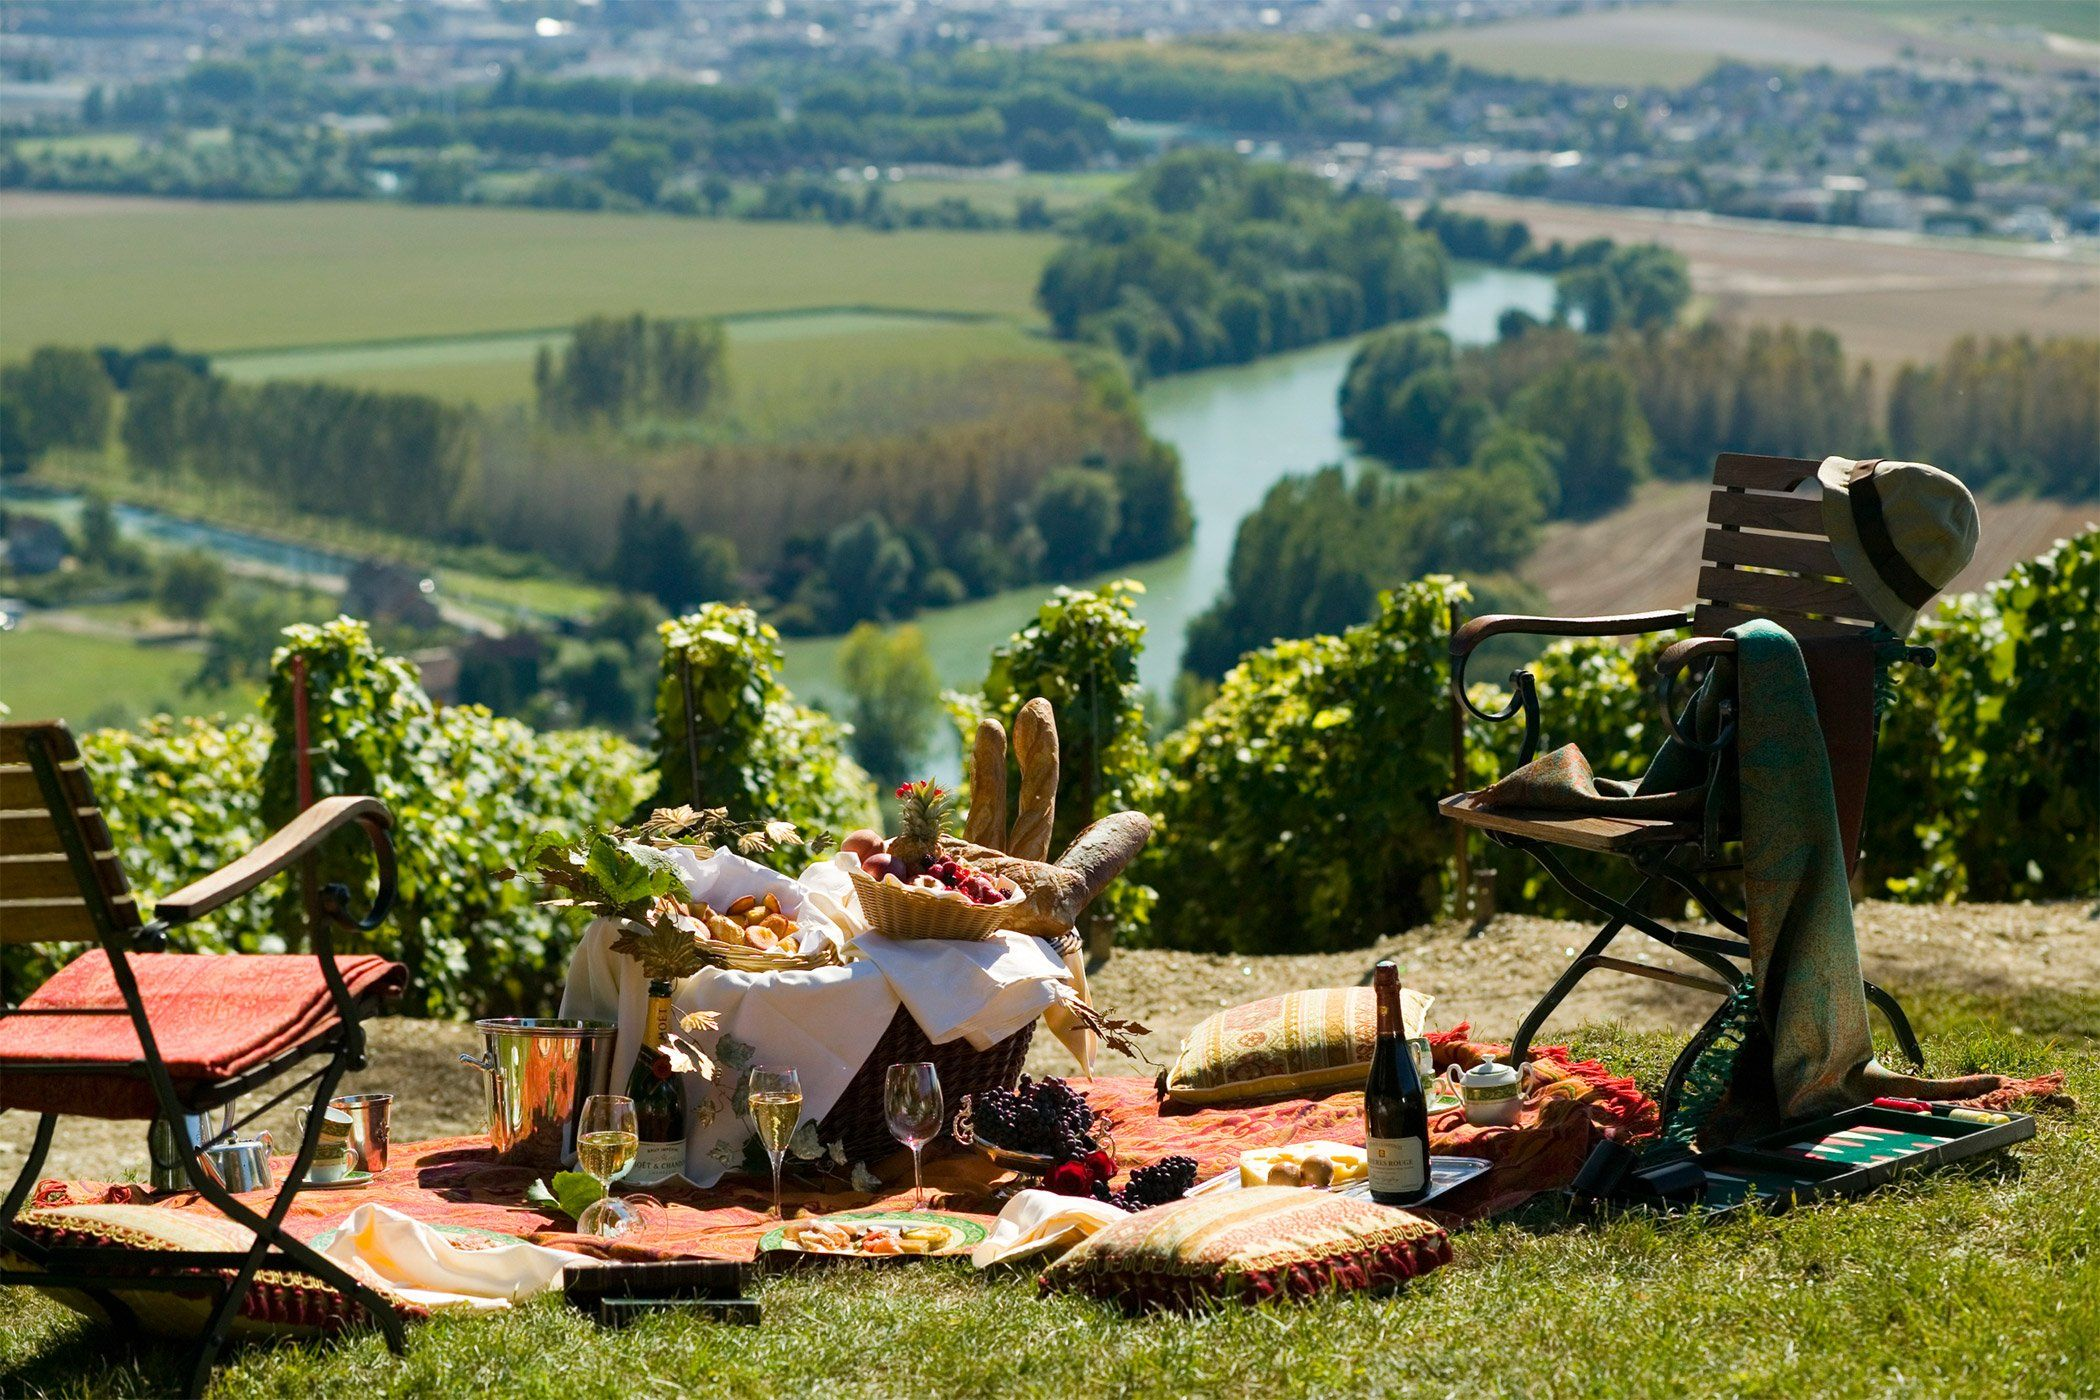 Picnic with Wine, Charcuterie, and a View